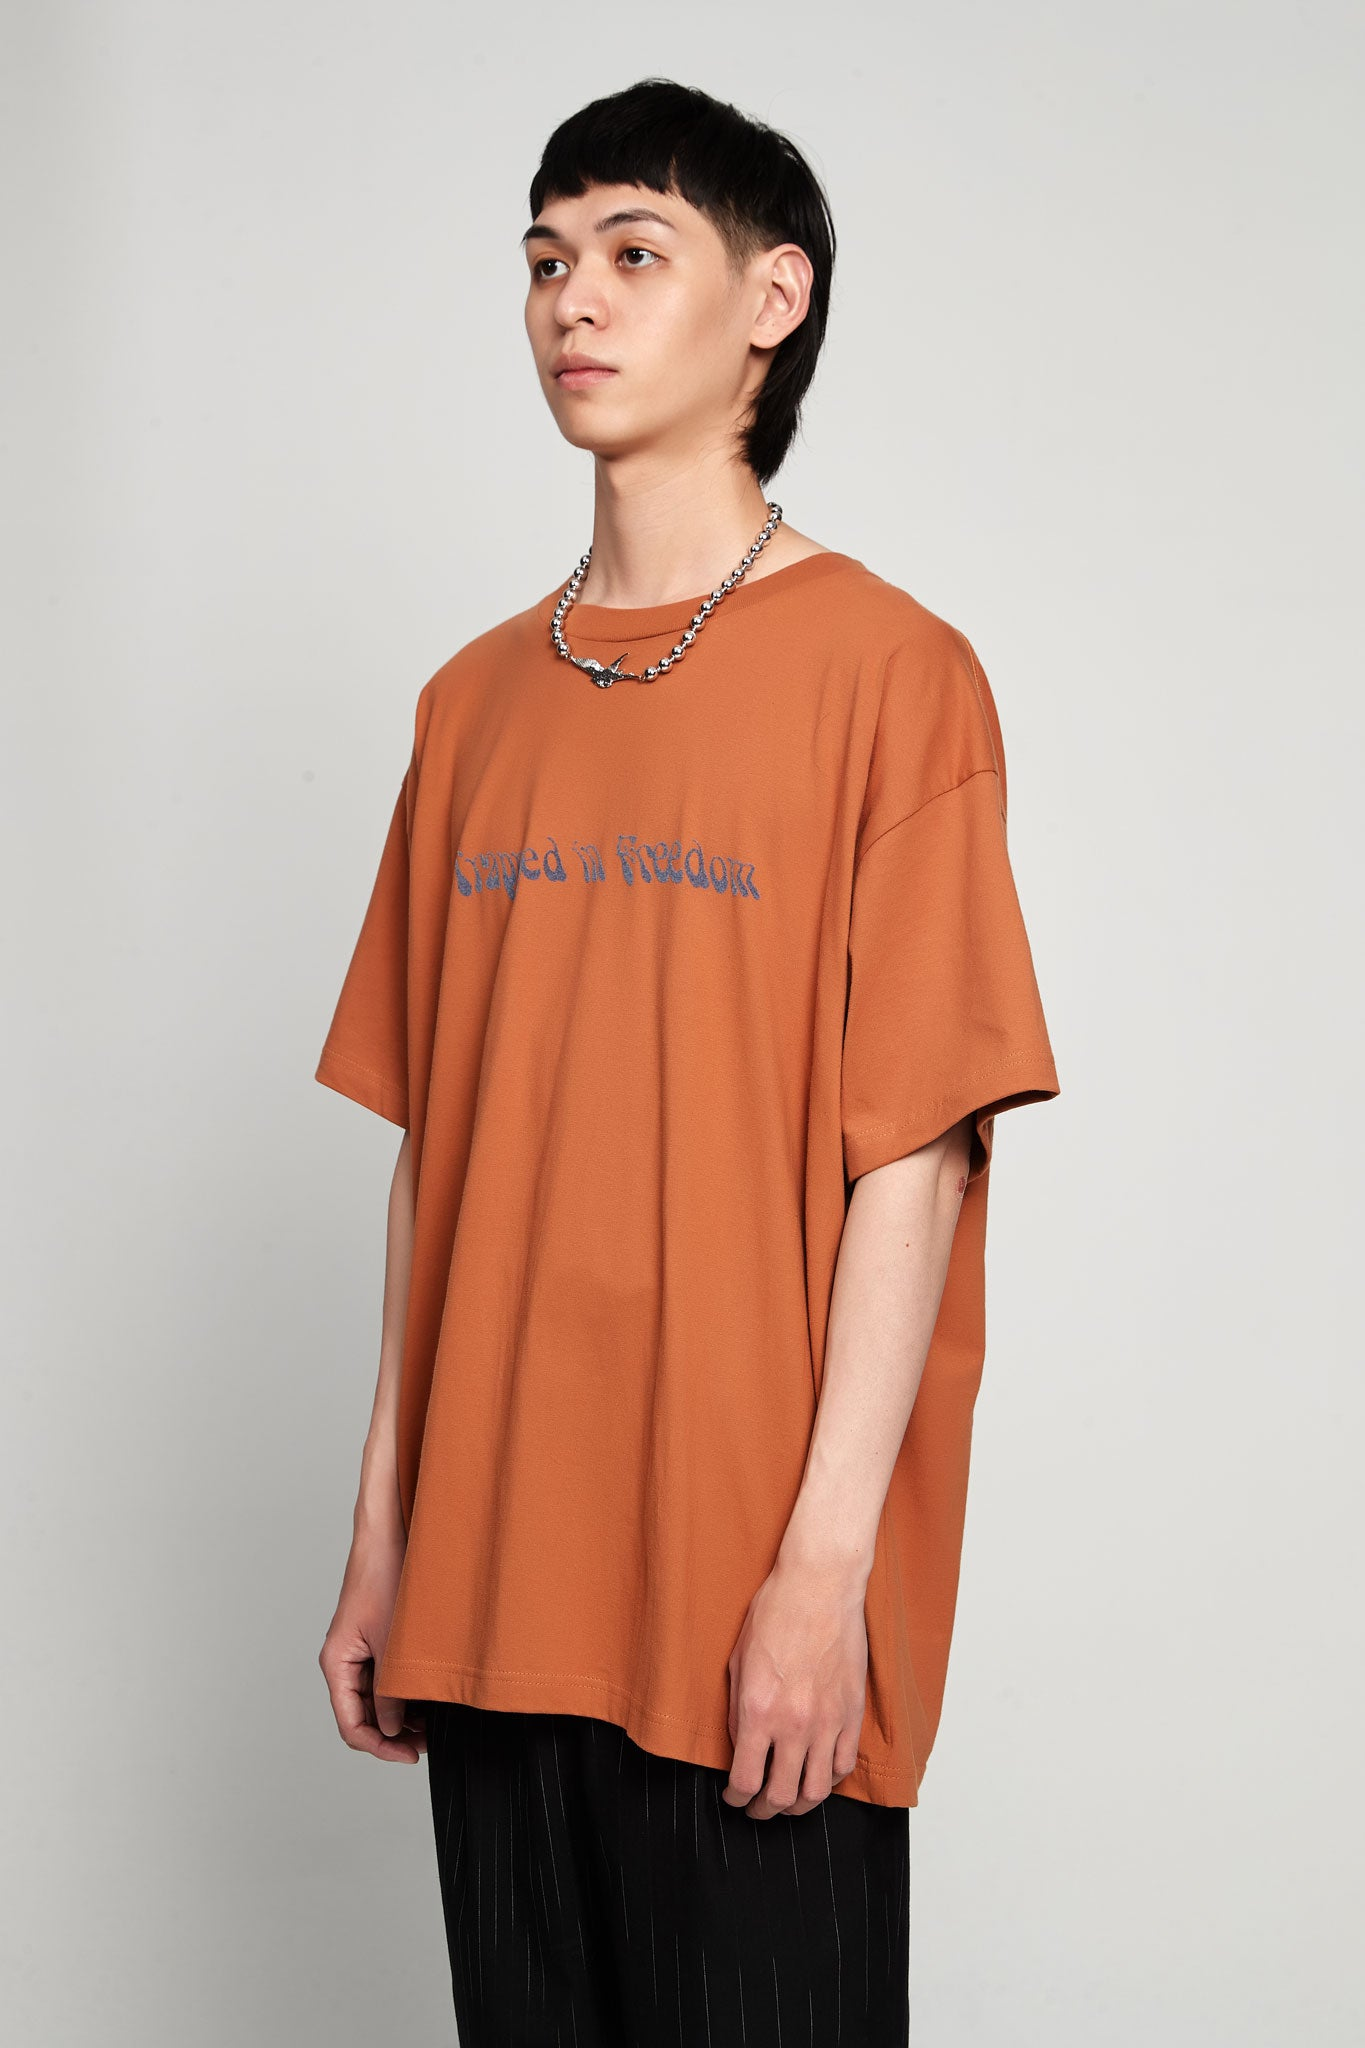 Trapped Print Vision T-shirt Jersey Brown